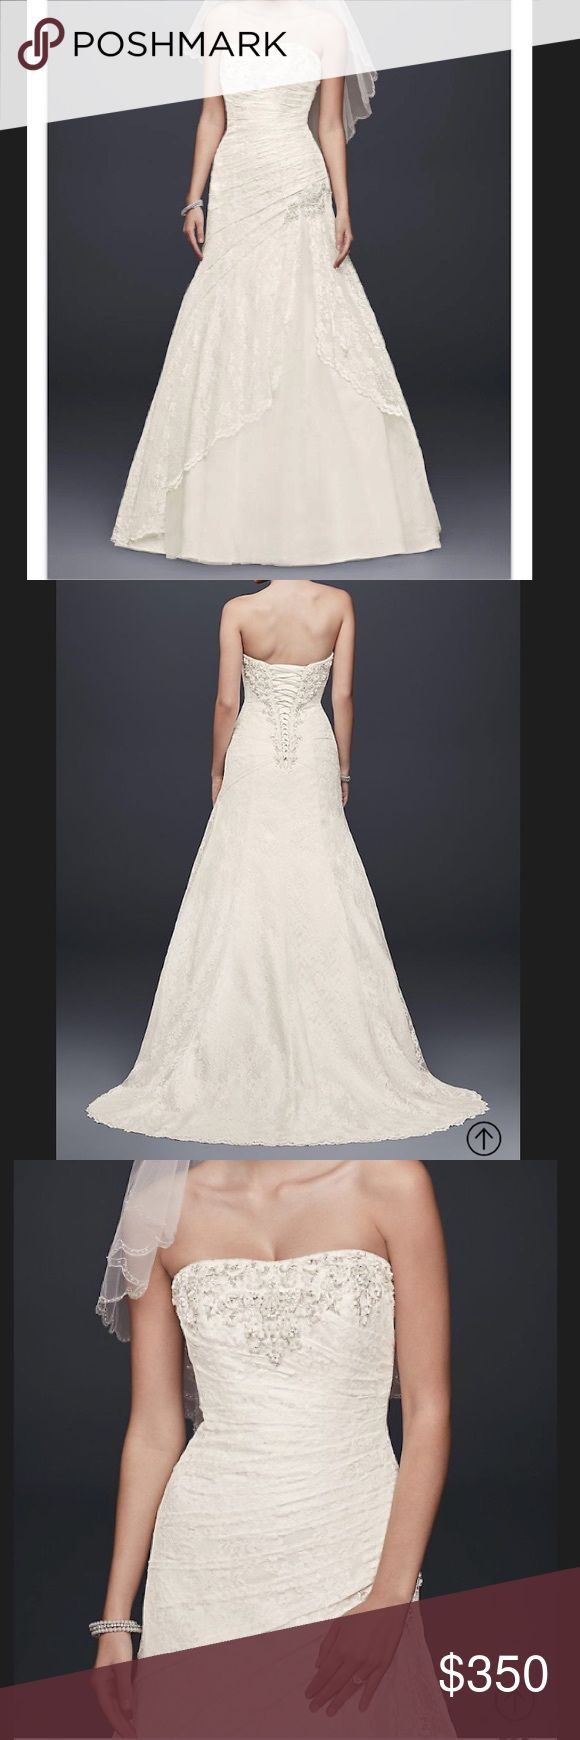 David's Bridal A-line Lace Wedding Dress Sz 12 ⭐️ This dress has a lace side split detail. Style number YP3344 in Ivory. This is my wedding dress worn for my wedding day. It's still in great condition however has not been dry cleaned. I'm posting to see if there is interest before donating and did not want a large dry cleaning bill if it goes unsold. David's Bridal Dresses Wedding